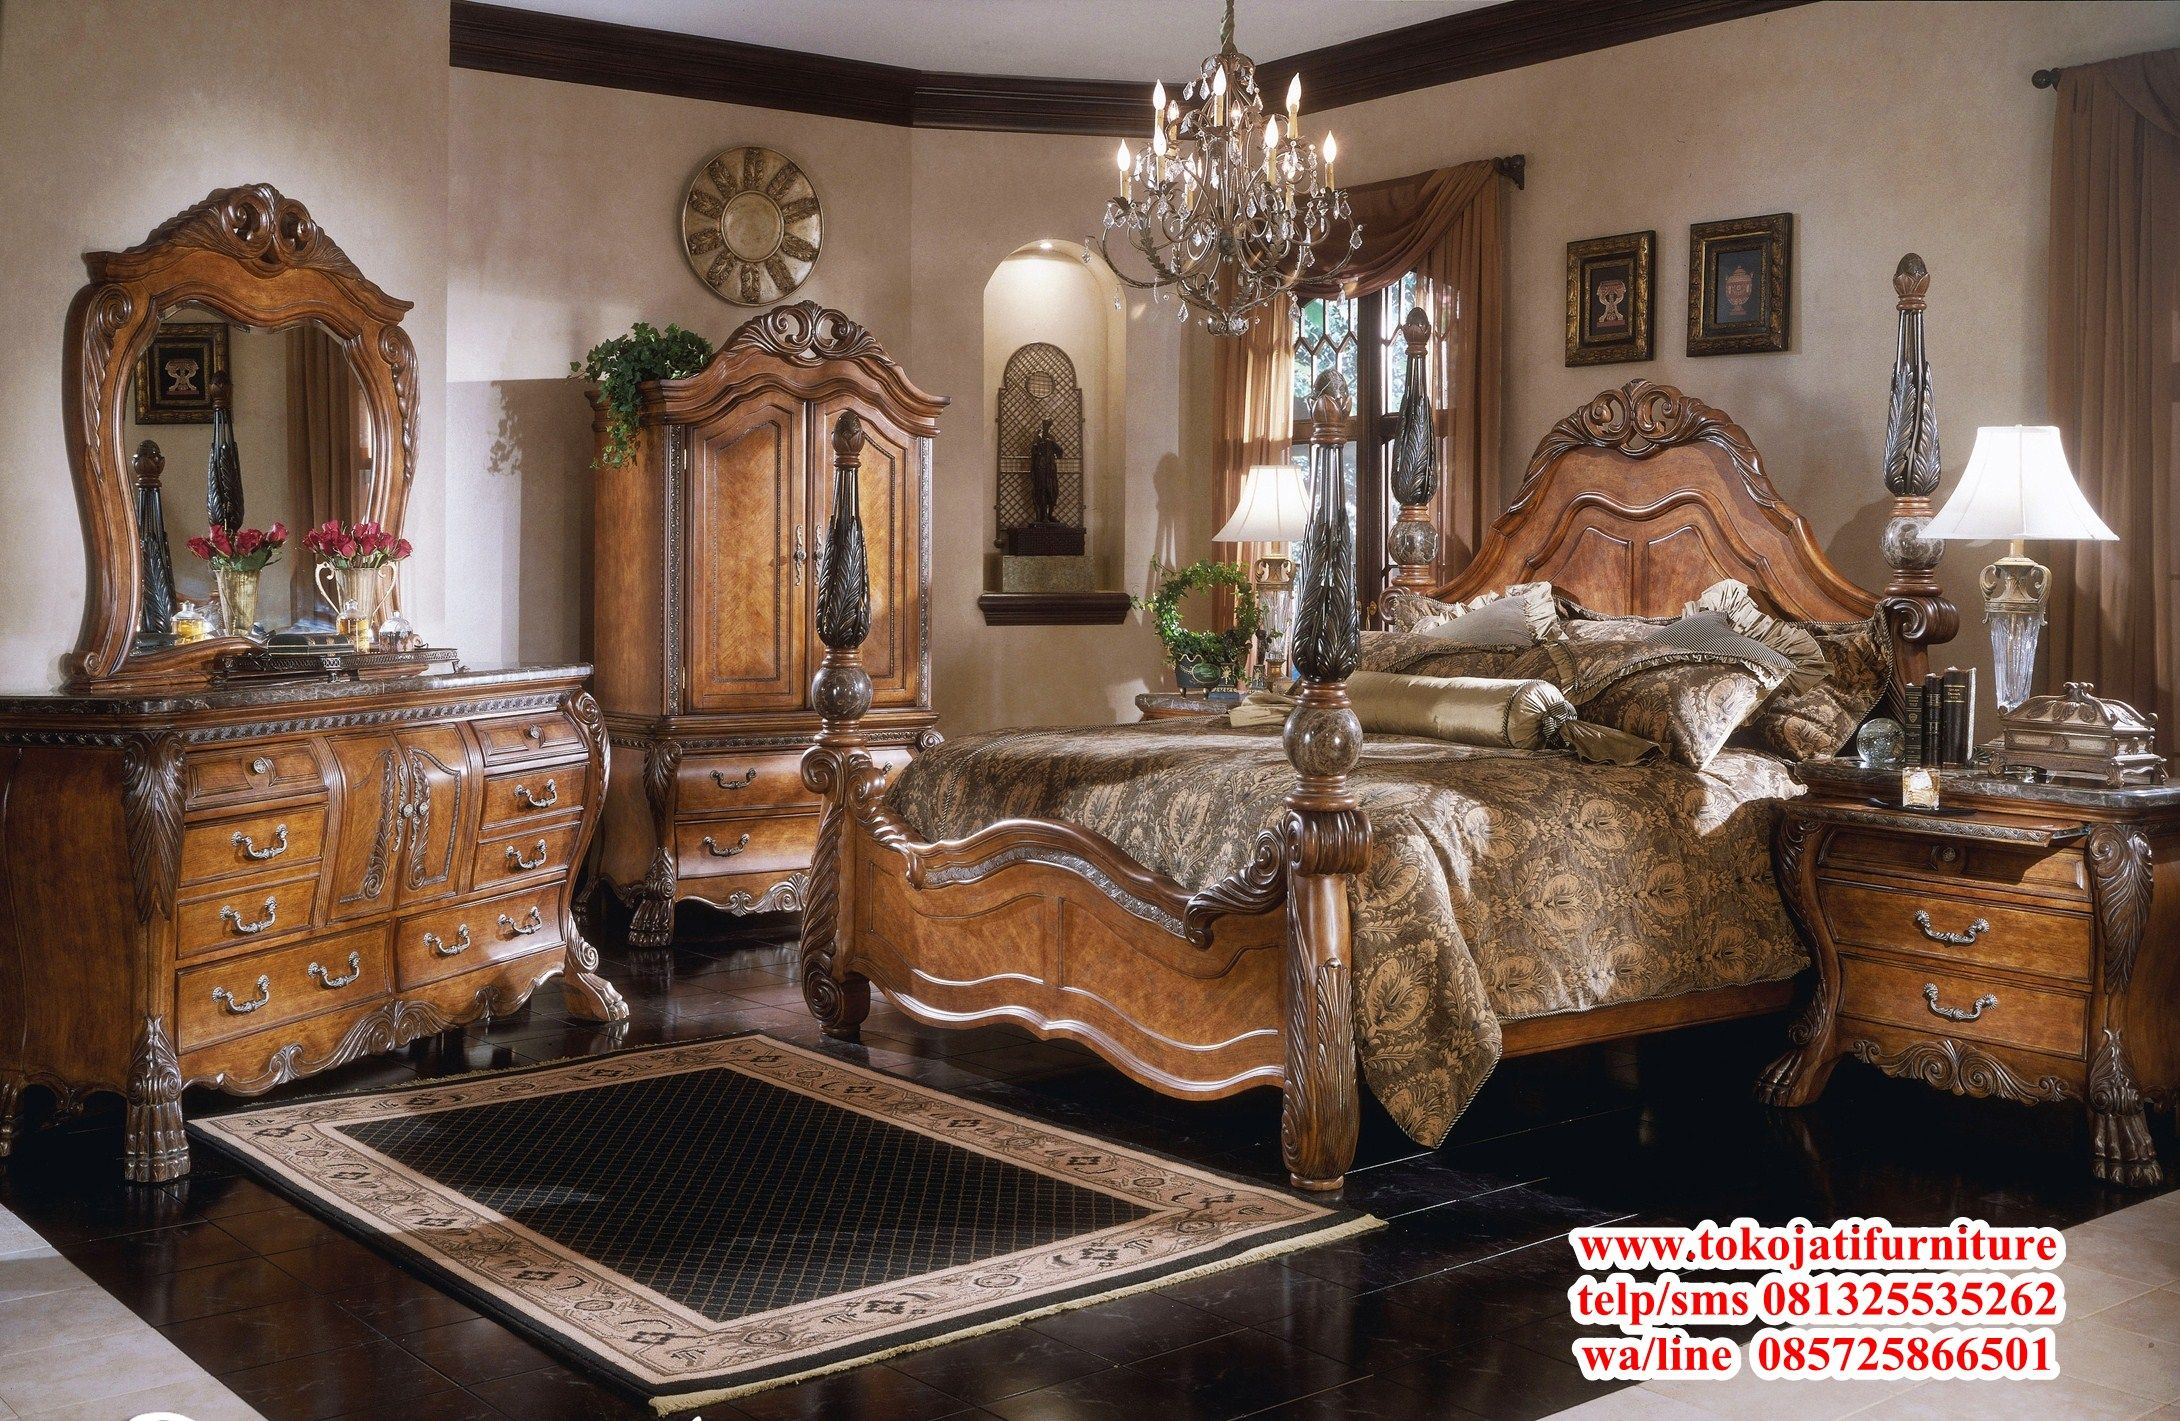 elegant fine piece bedroom furniture. Inspired By The Rustic Hillsides Of Tuscany Comes Casual Elegance Tuscano Collection, Features A Distinct Bombe Shape, Hand Carvings, Elegant Fine Piece Bedroom Furniture